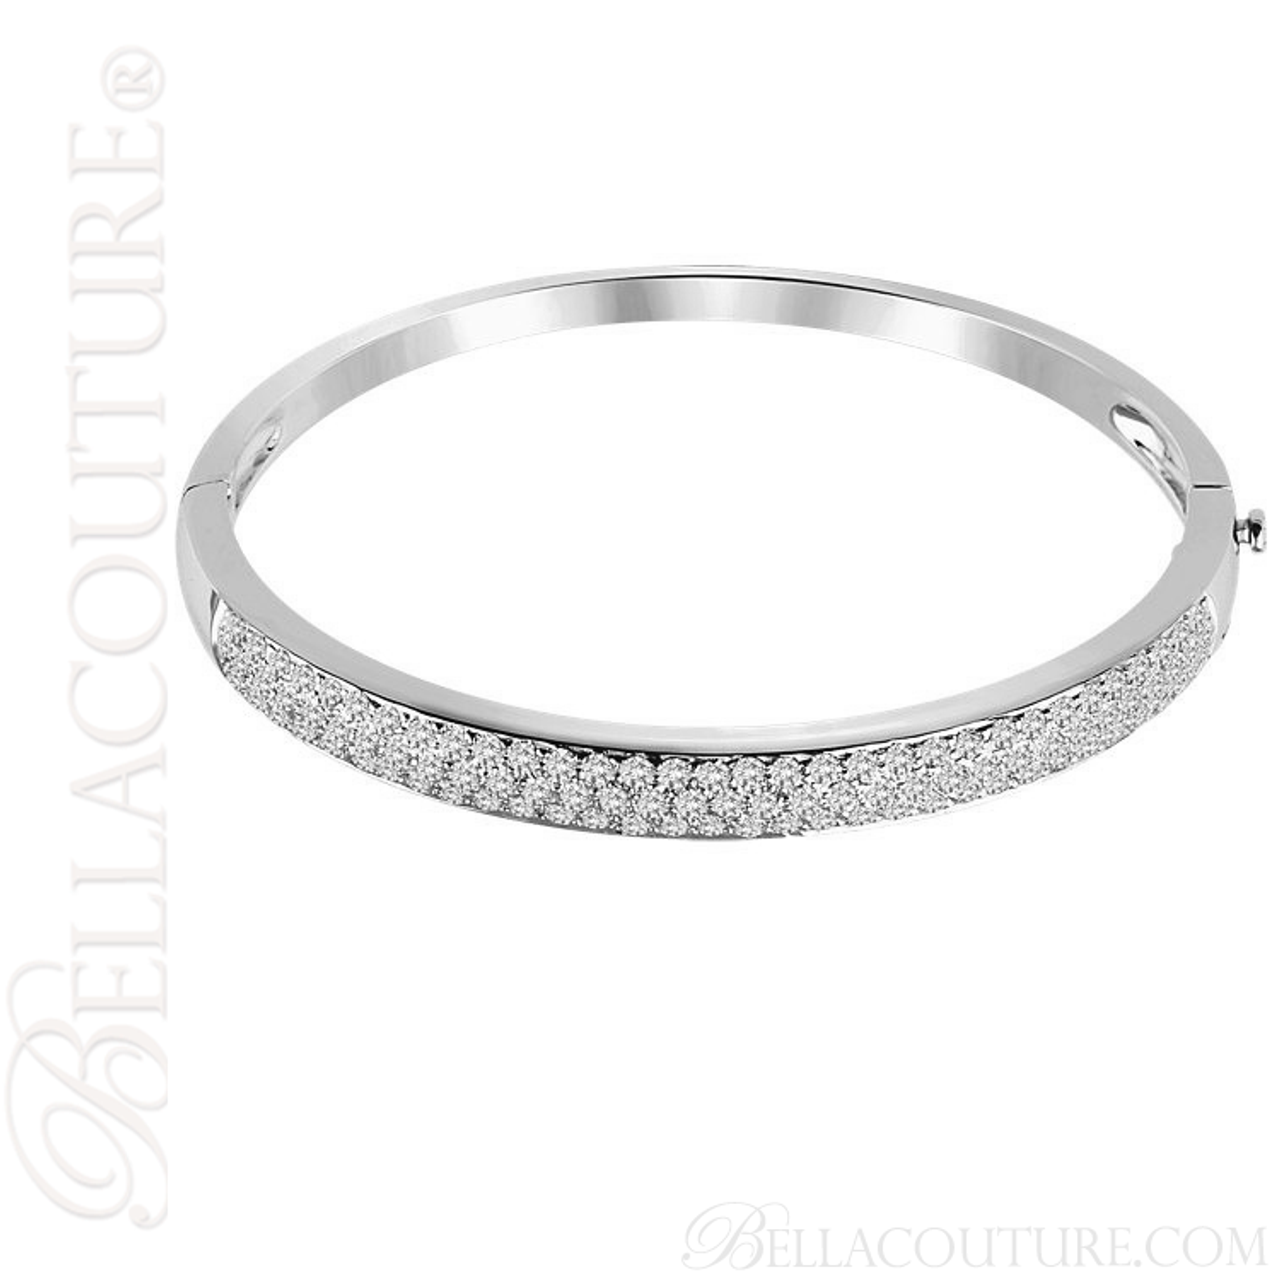 crista hinged bangles bracelet diamond bangle crystal pave bracelets